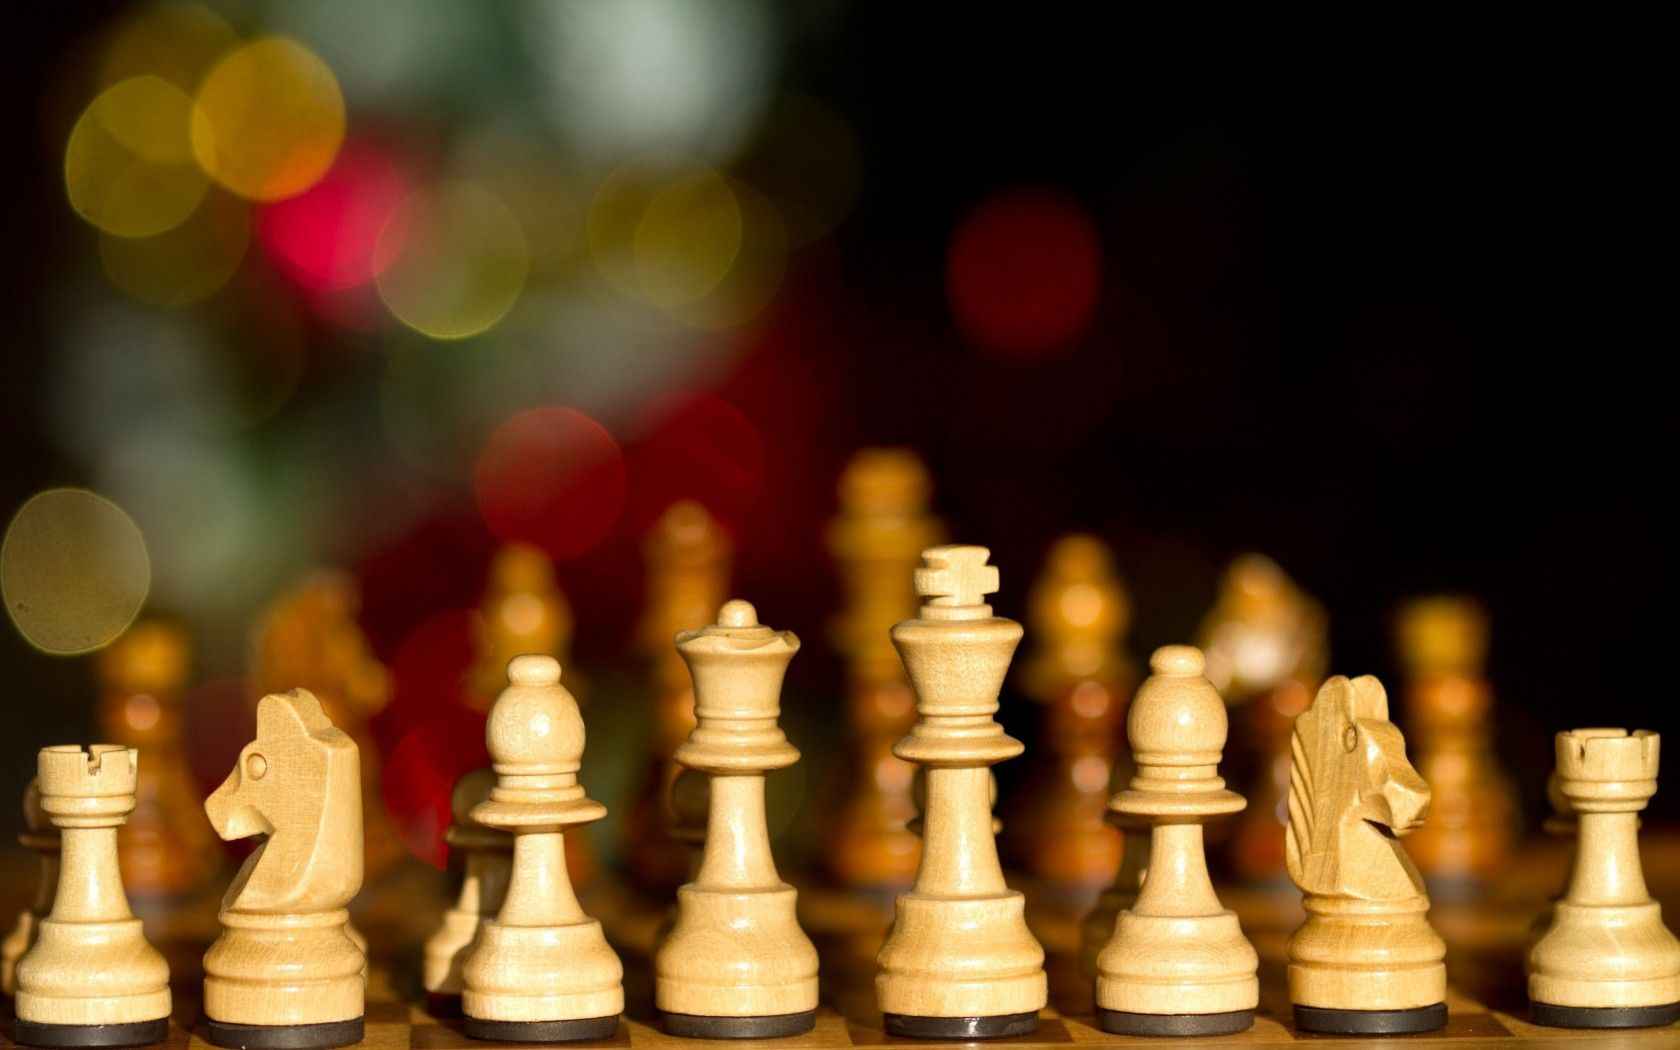 Chess Wallpaper HD #5Pn | Awesomeness in 2019 | Chess app